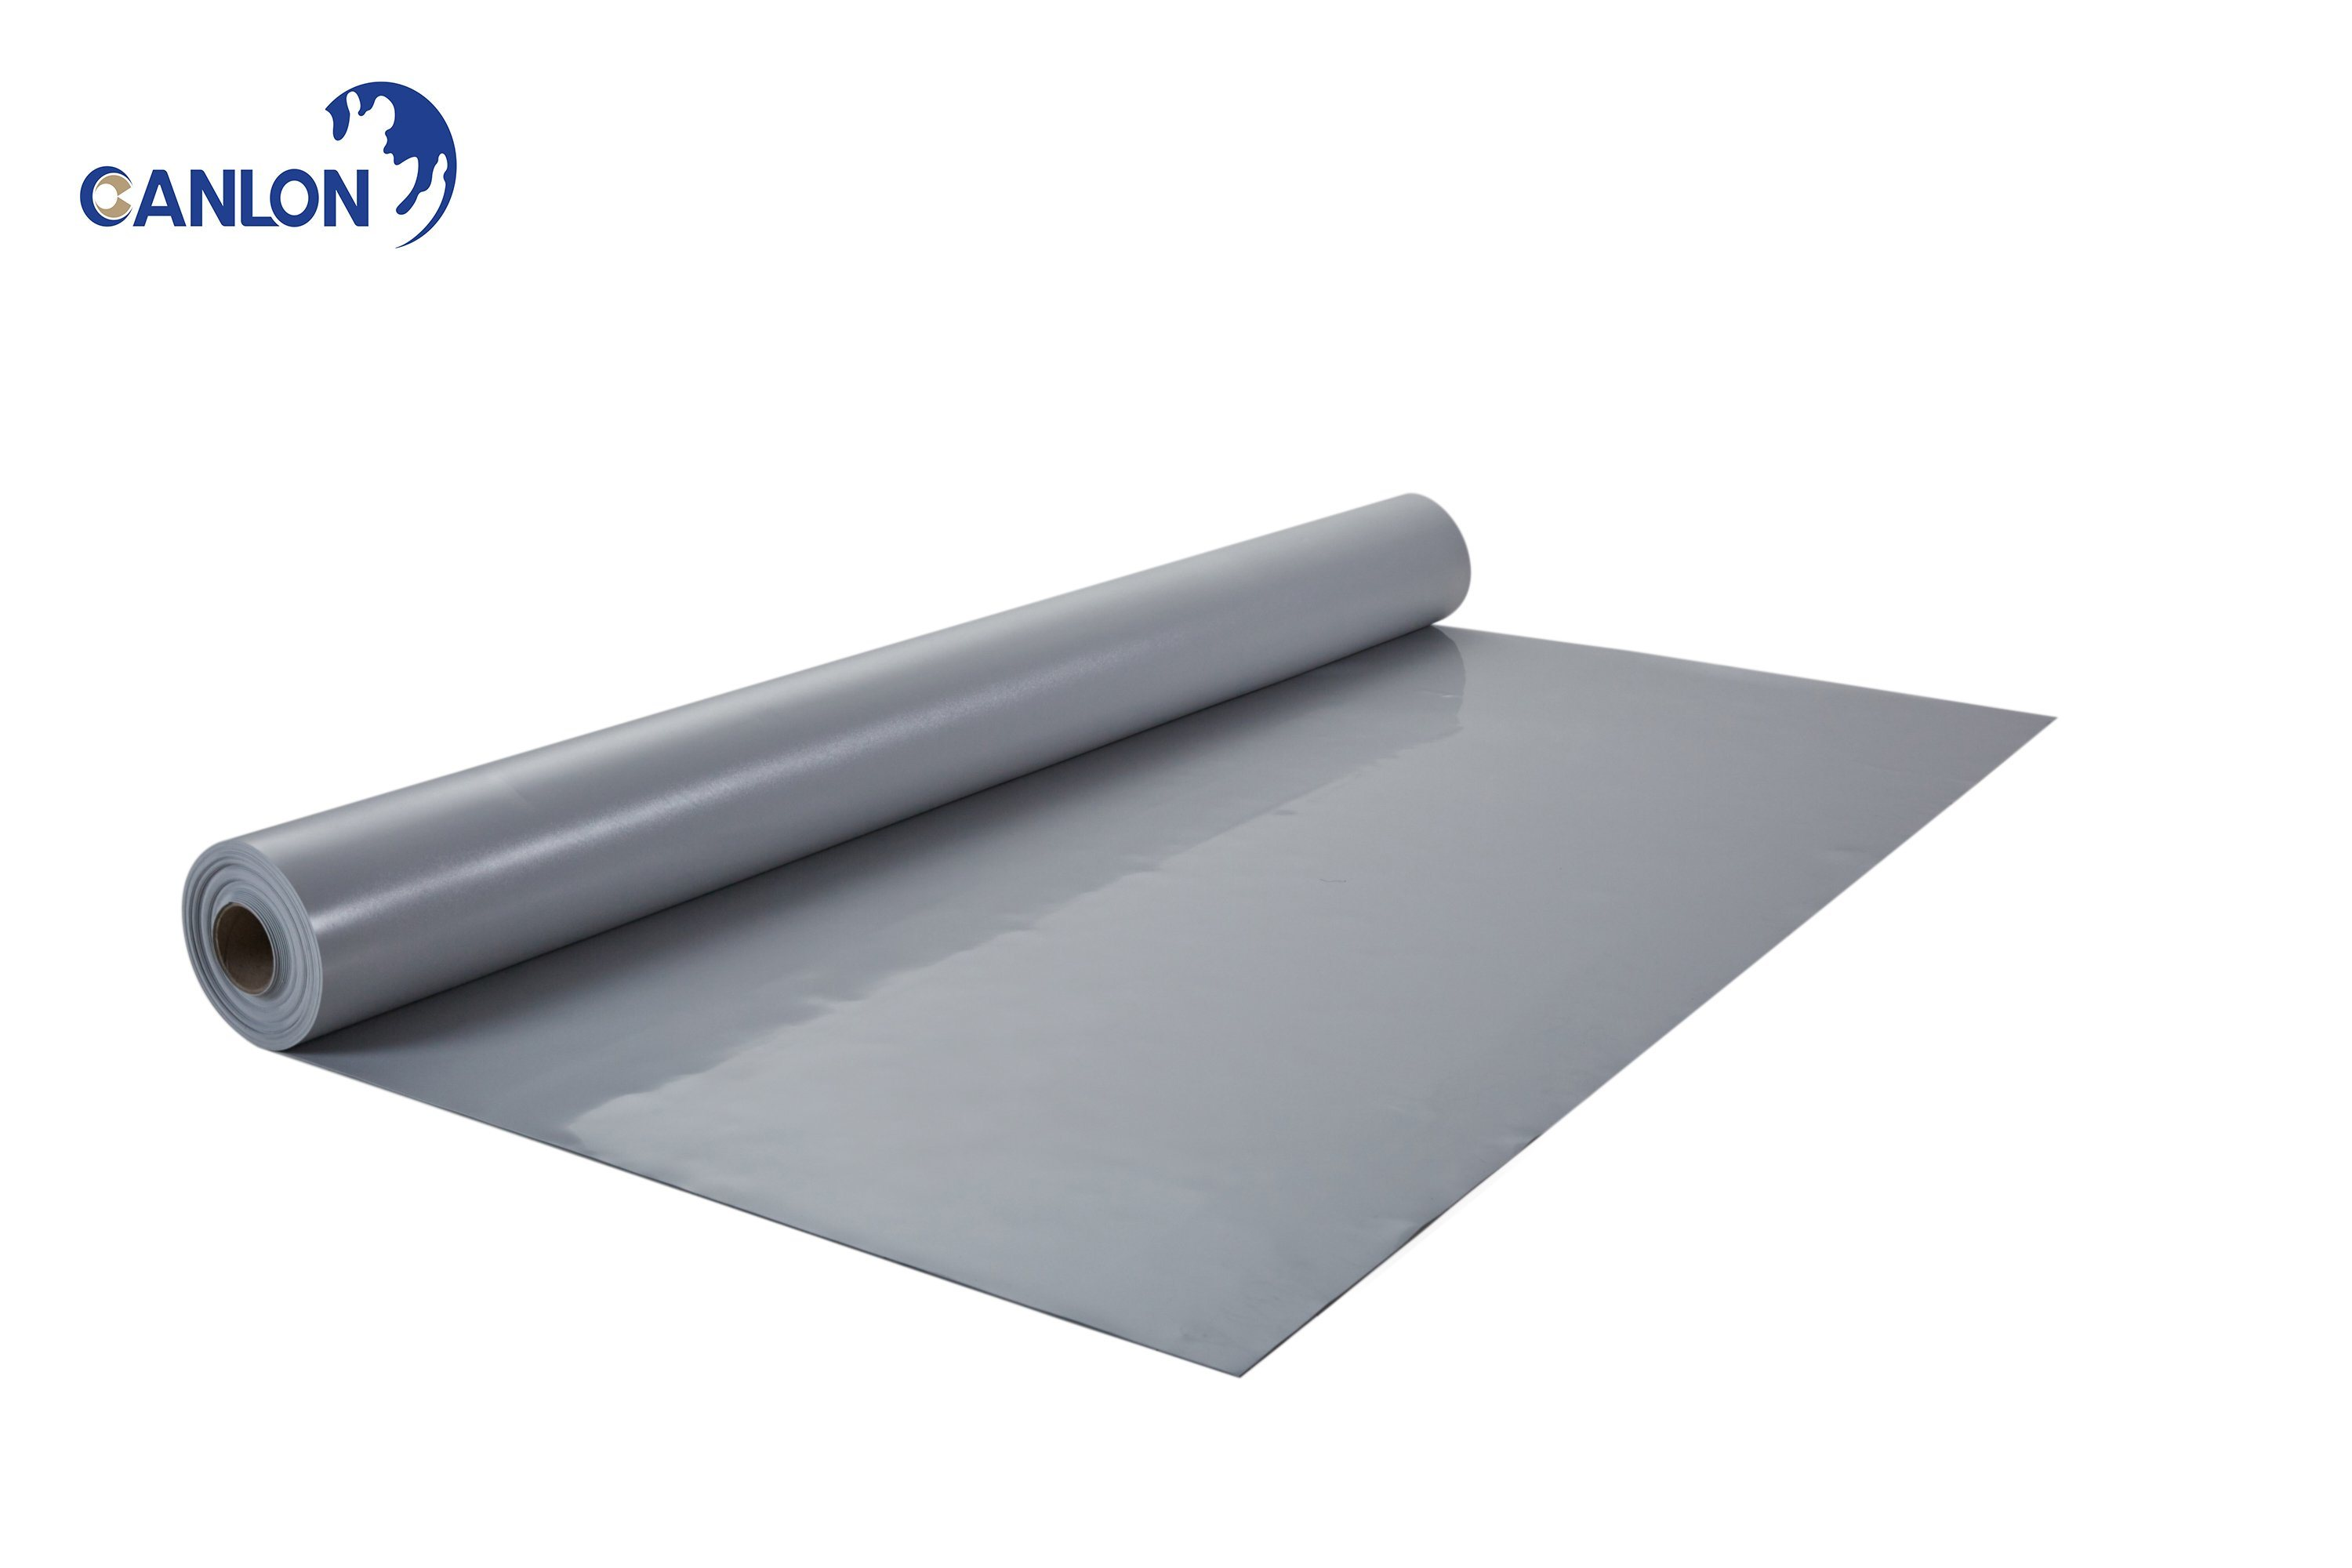 China Pvc Smooth Type Single Ply Roofing Membrane China Pvc Roofing Membrane Single Ply Membrane